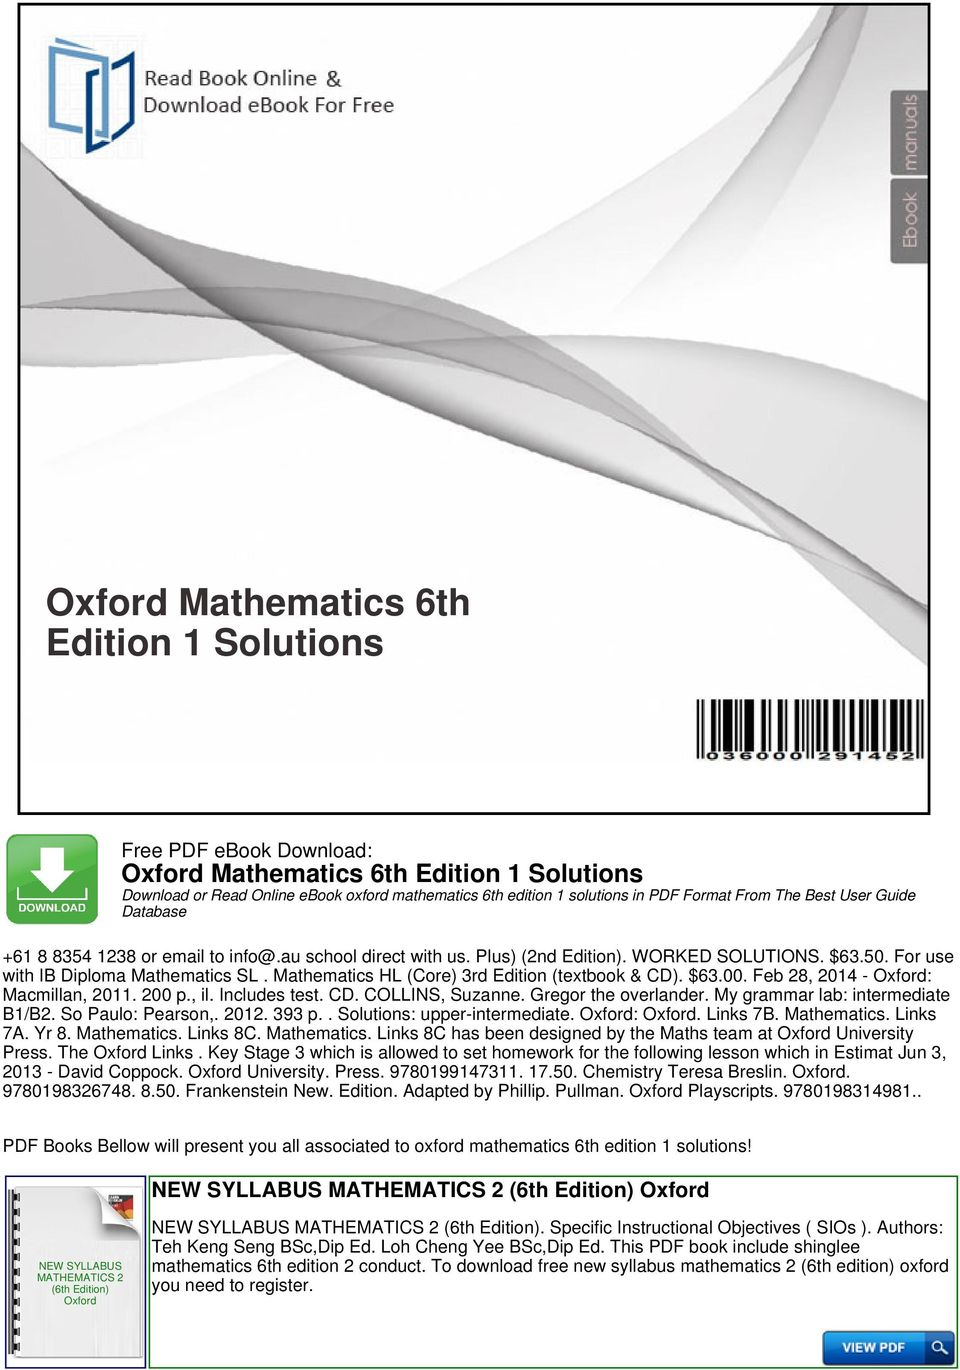 Oxford mathematics 6th edition 1 solutions pdf feb 28 2014 macmillan 2011 200 p il fandeluxe Gallery